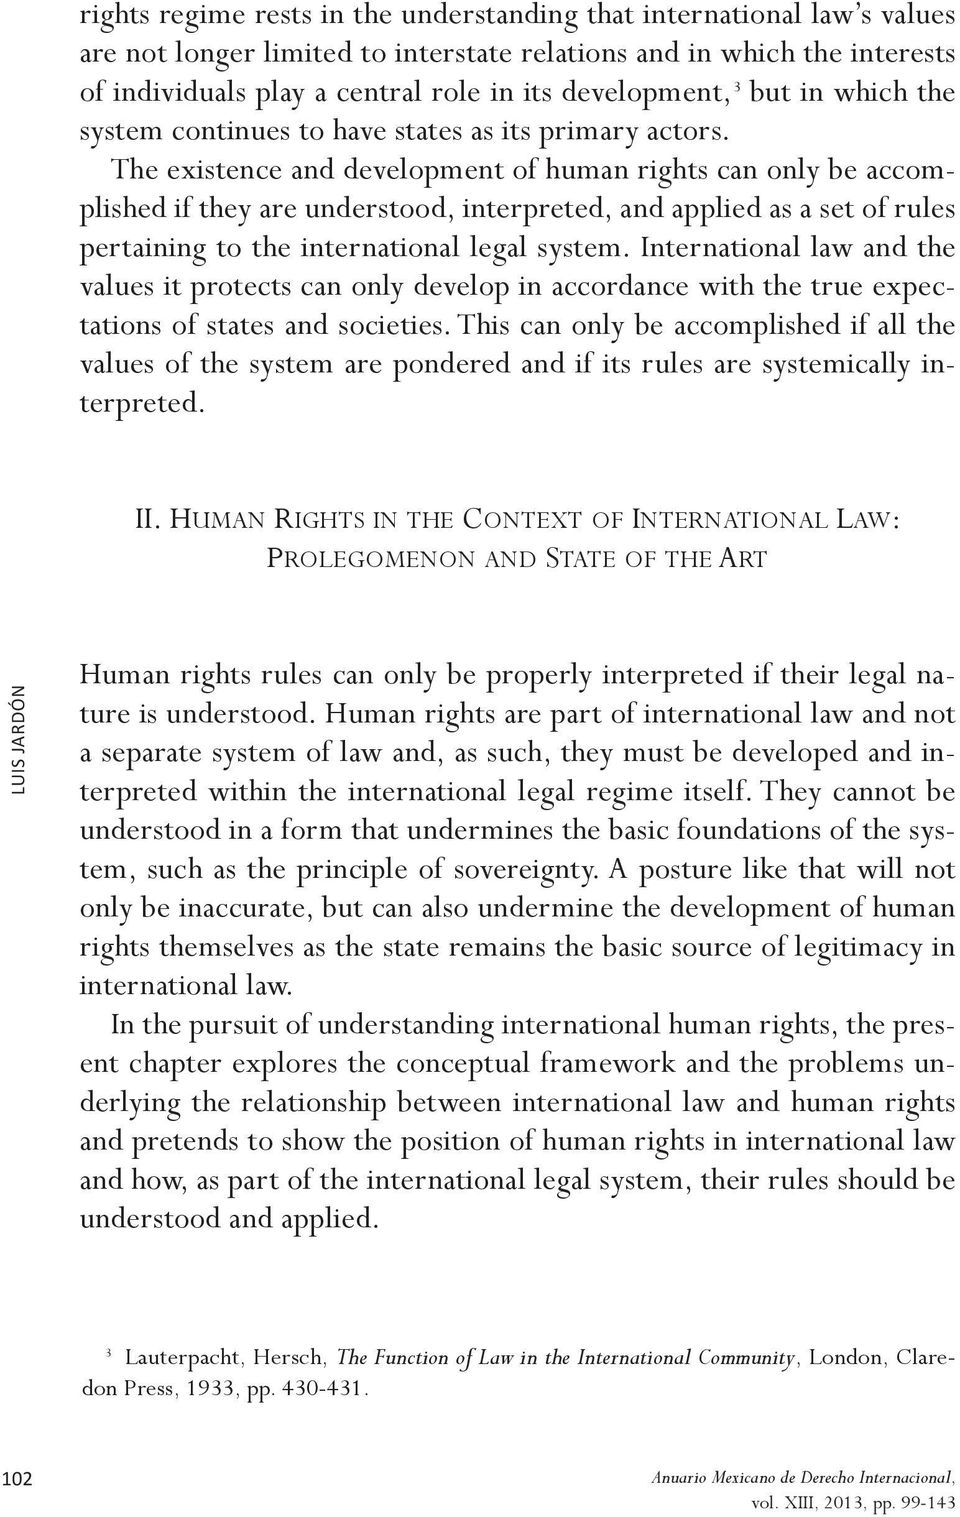 The existence and development of human rights can only be accomplished if they are understood, interpreted, and applied as a set of rules pertaining to the international legal system.